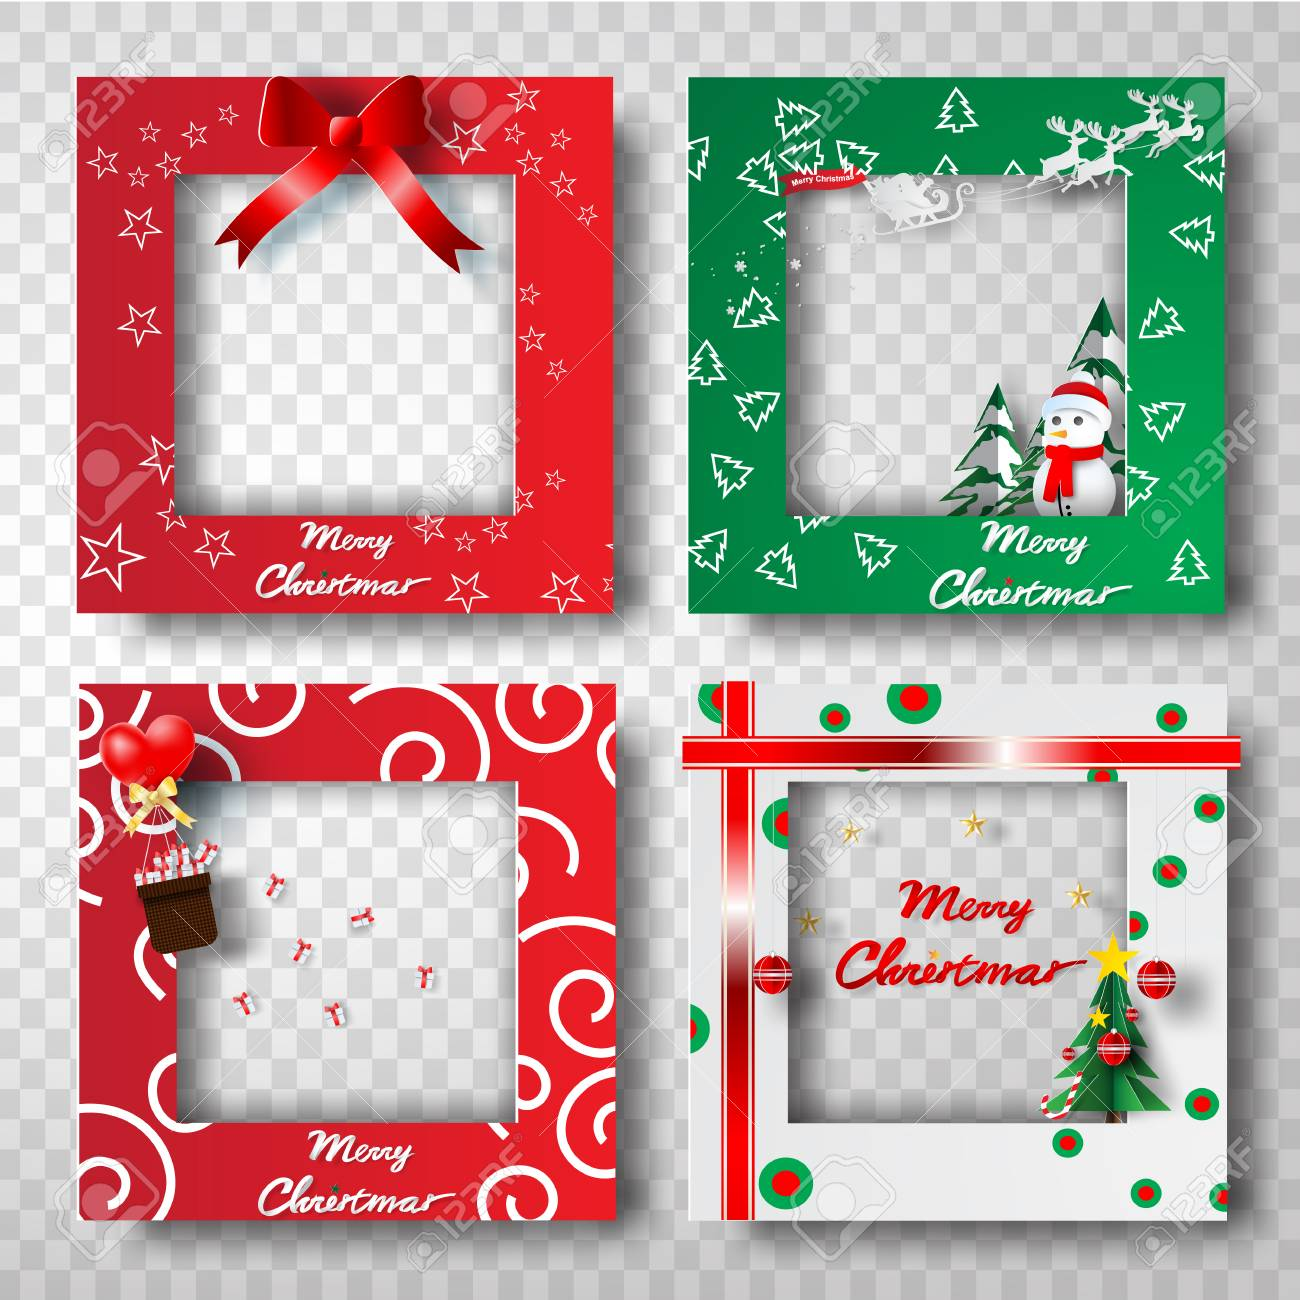 Paper Art And Craft Of Christmas Border Frame Photo Design Set